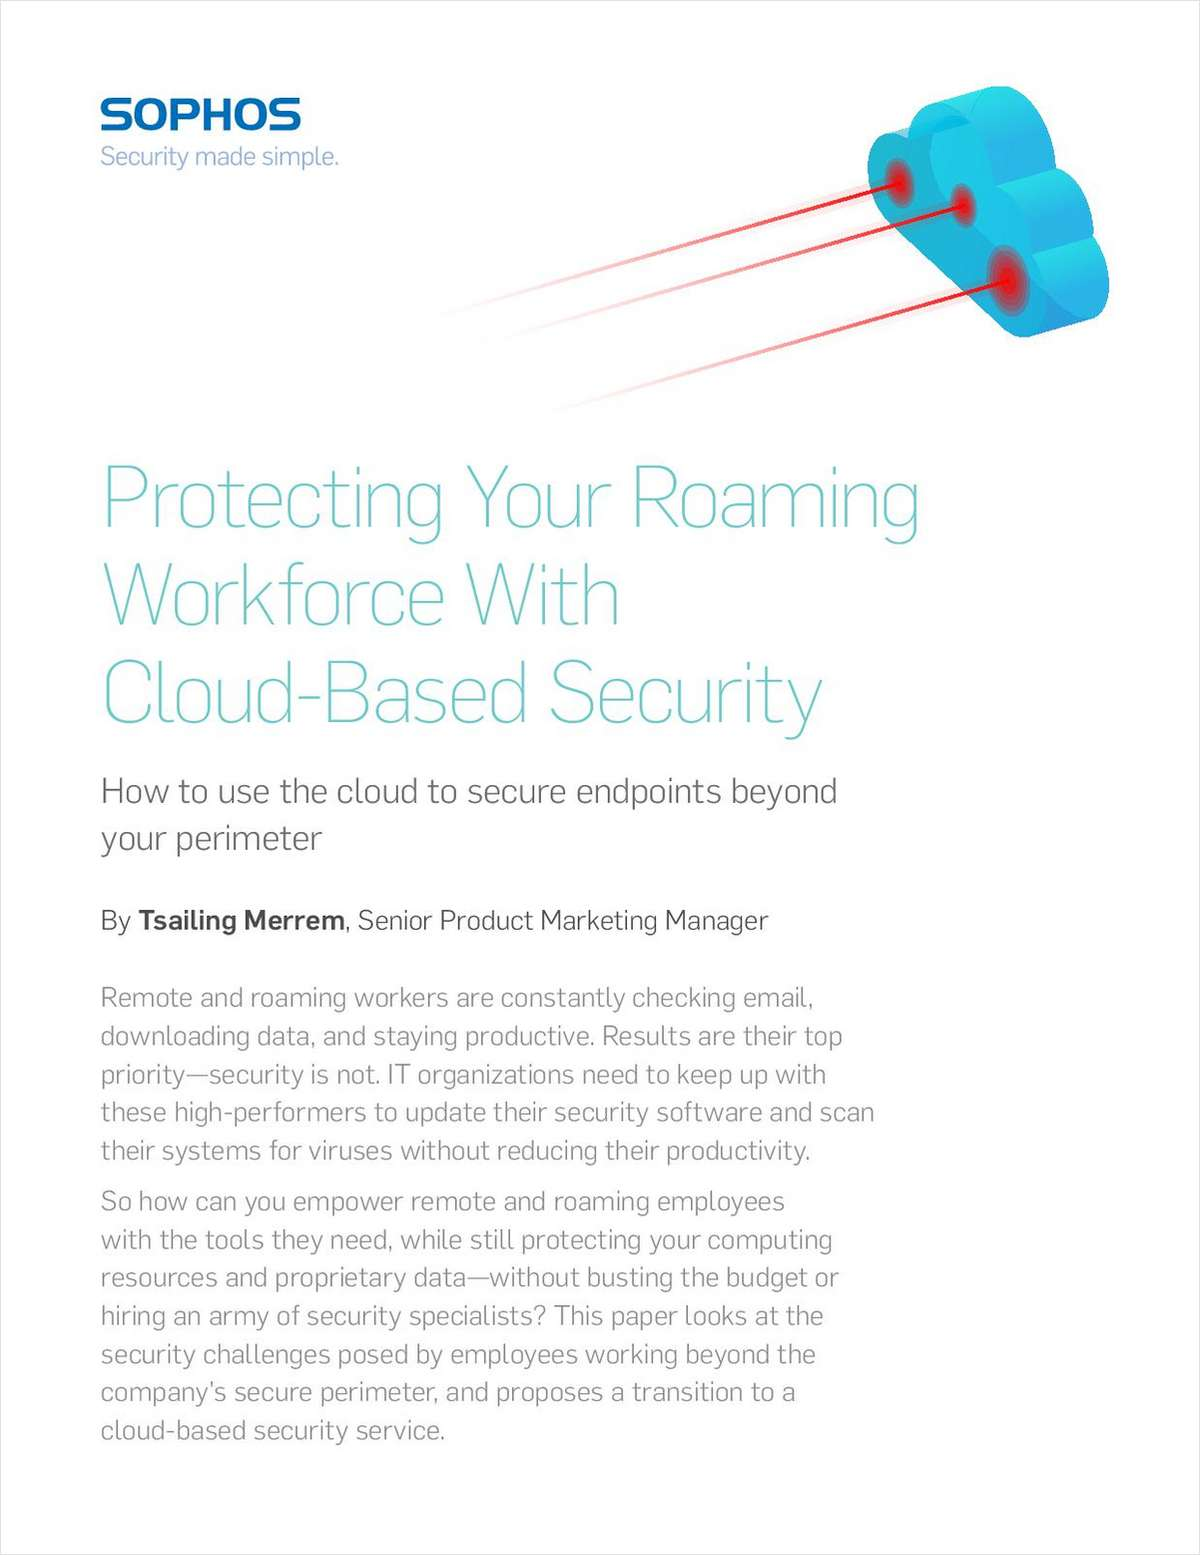 Protecting Your Roaming Workforce With Cloud-Based Security